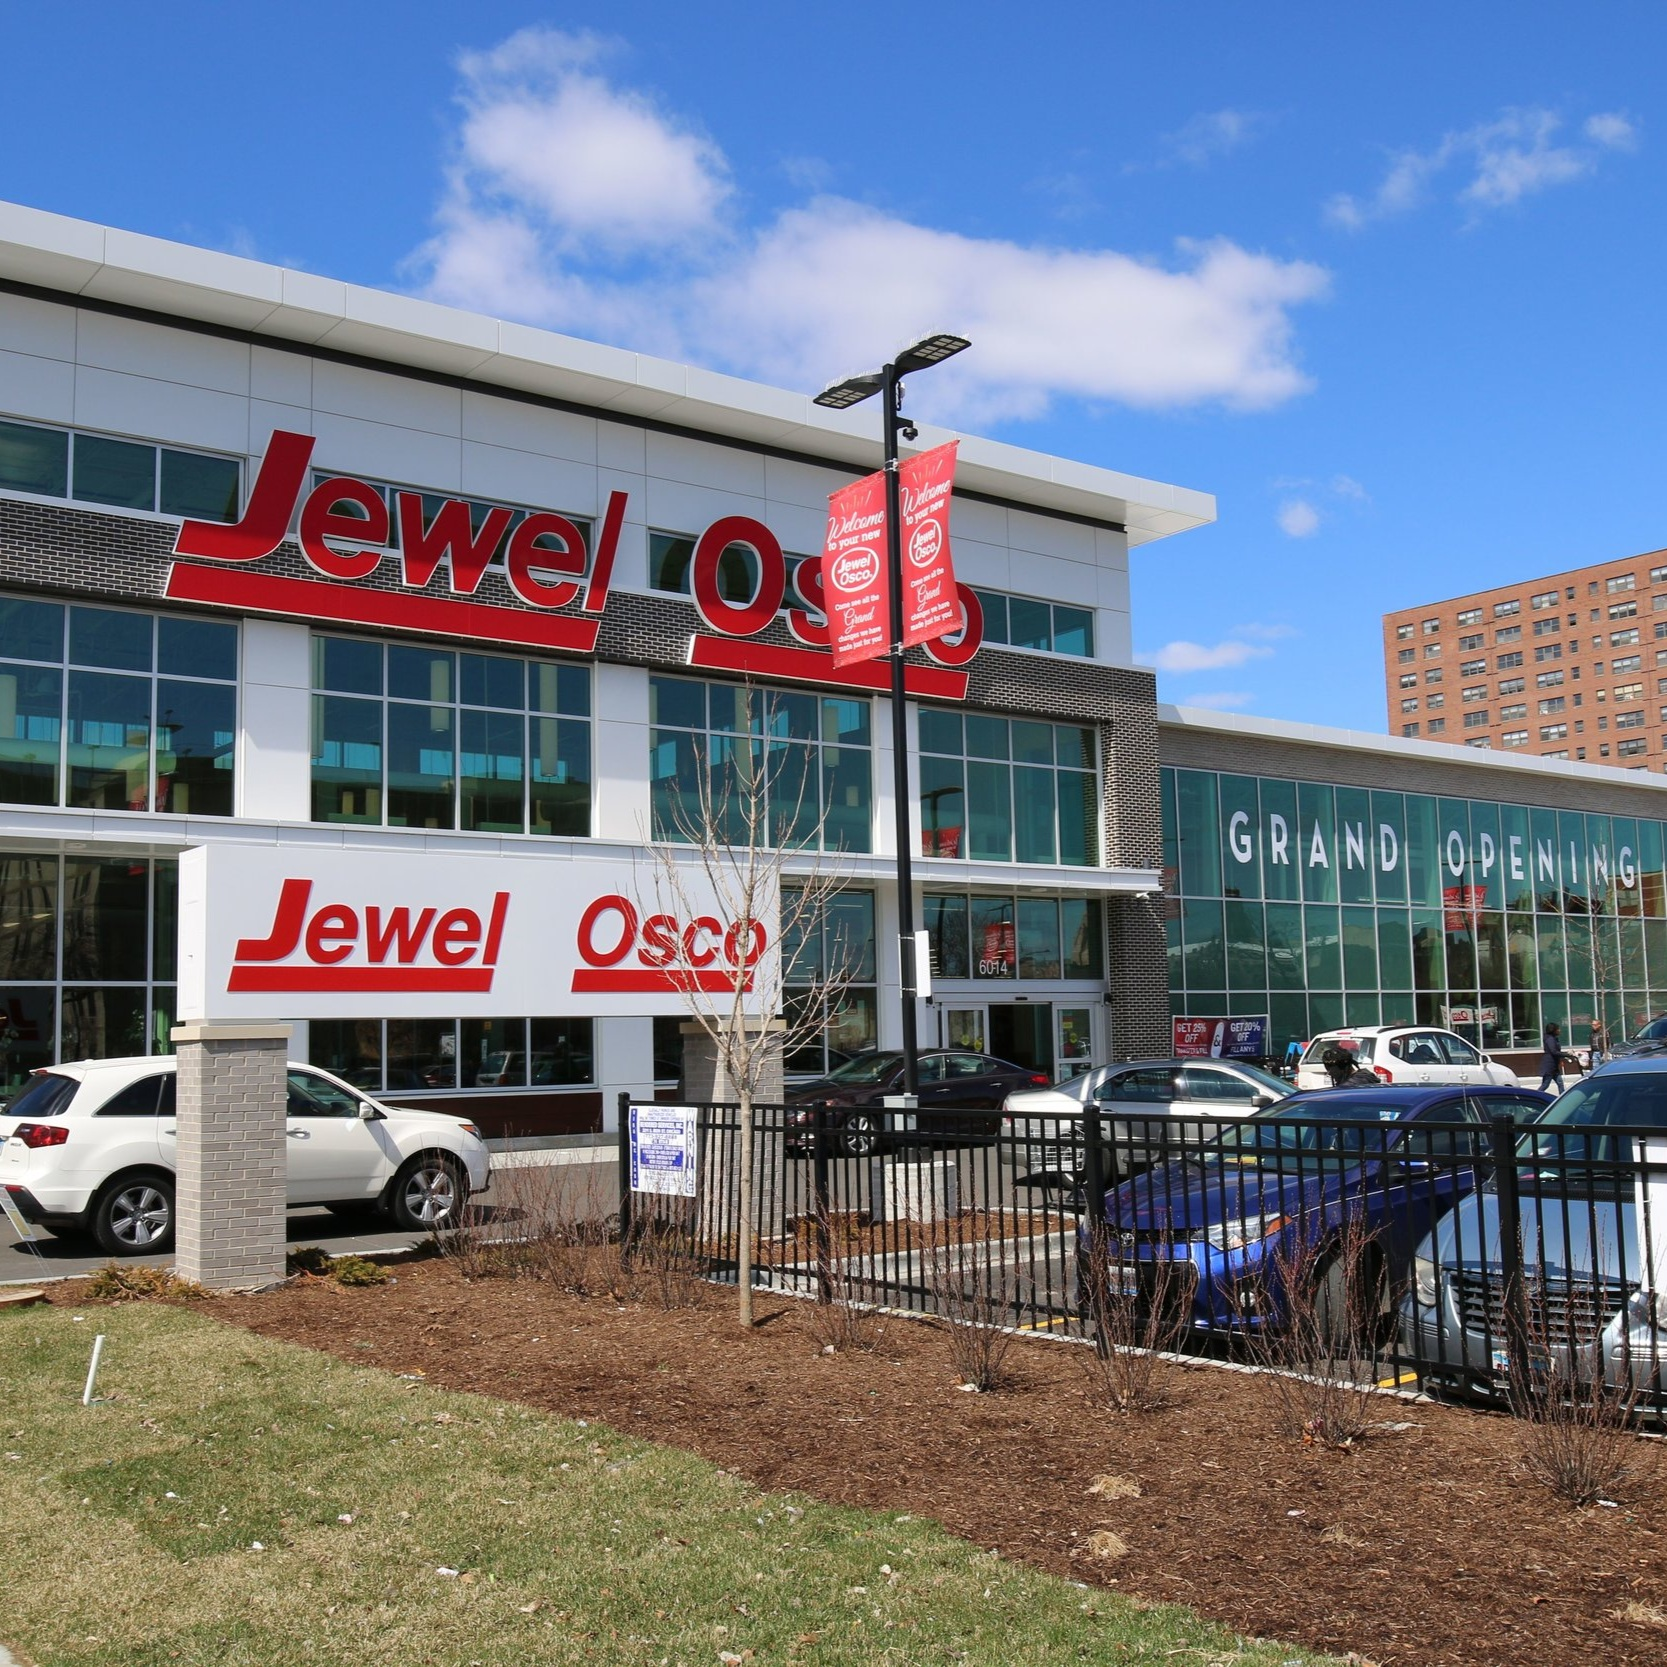 Expanding food choiceJewel-OscO - 48,000 sf full-service grocery storeWoodlawn, ChicagoCOMPLETED Q1 2019